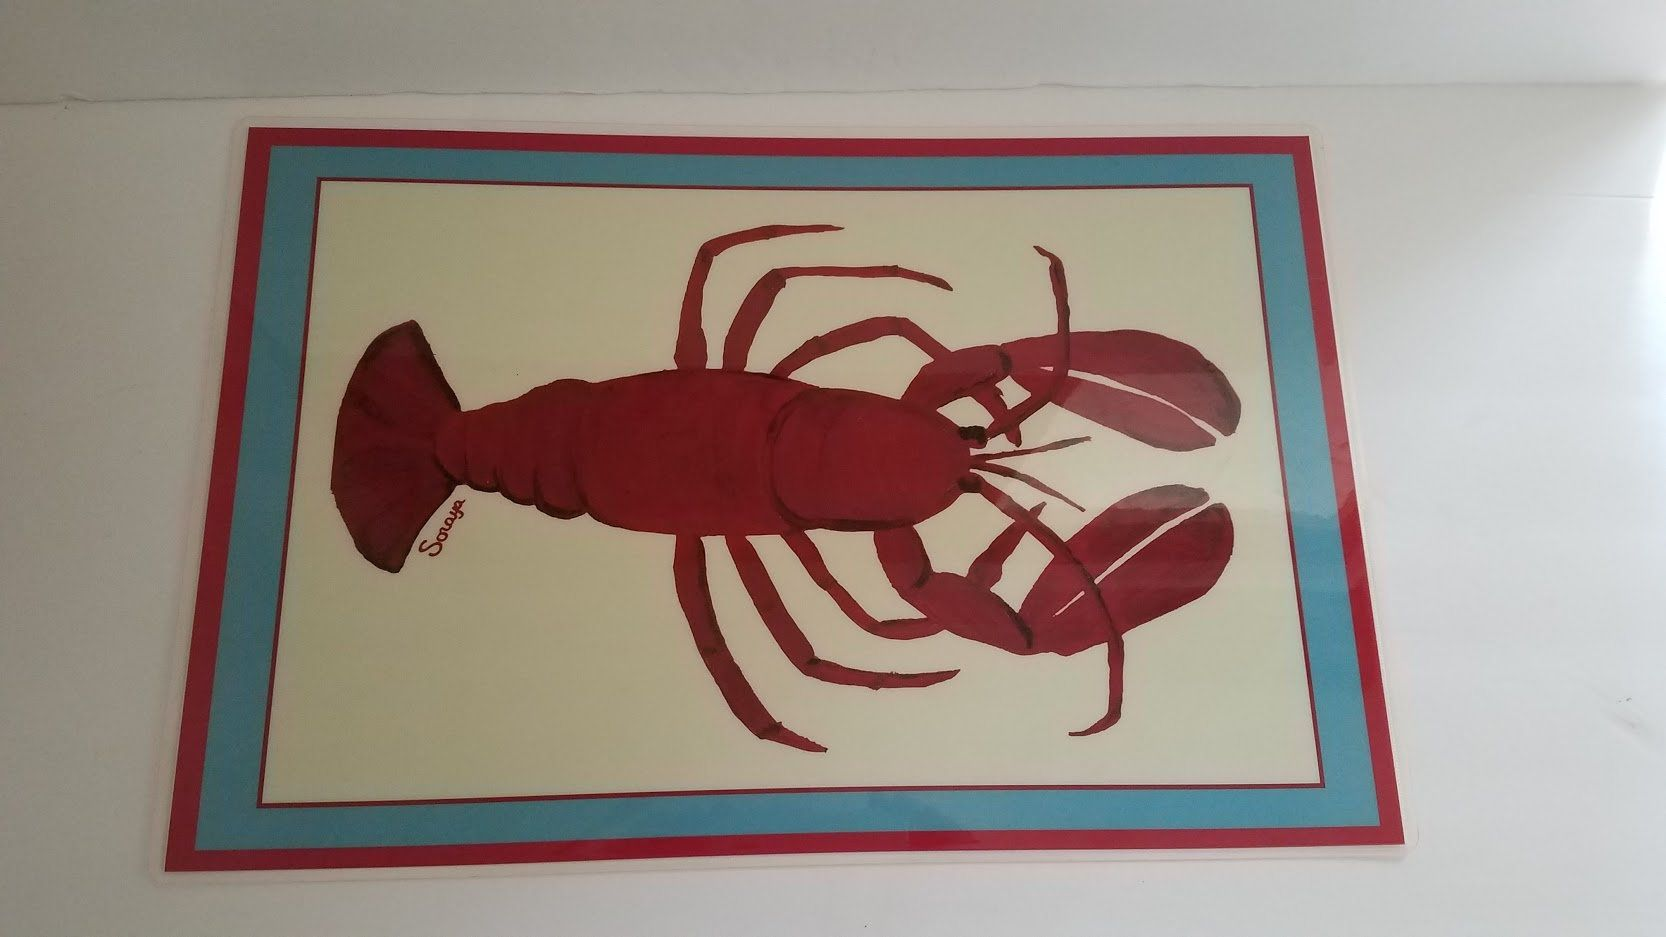 Soraya Jones Laminated Lobster Place Mats Approximately 18 Inches By 11 75 Inches Red White And Blue Red Lobster On One Side Placemats Red Polka Dot Etsy